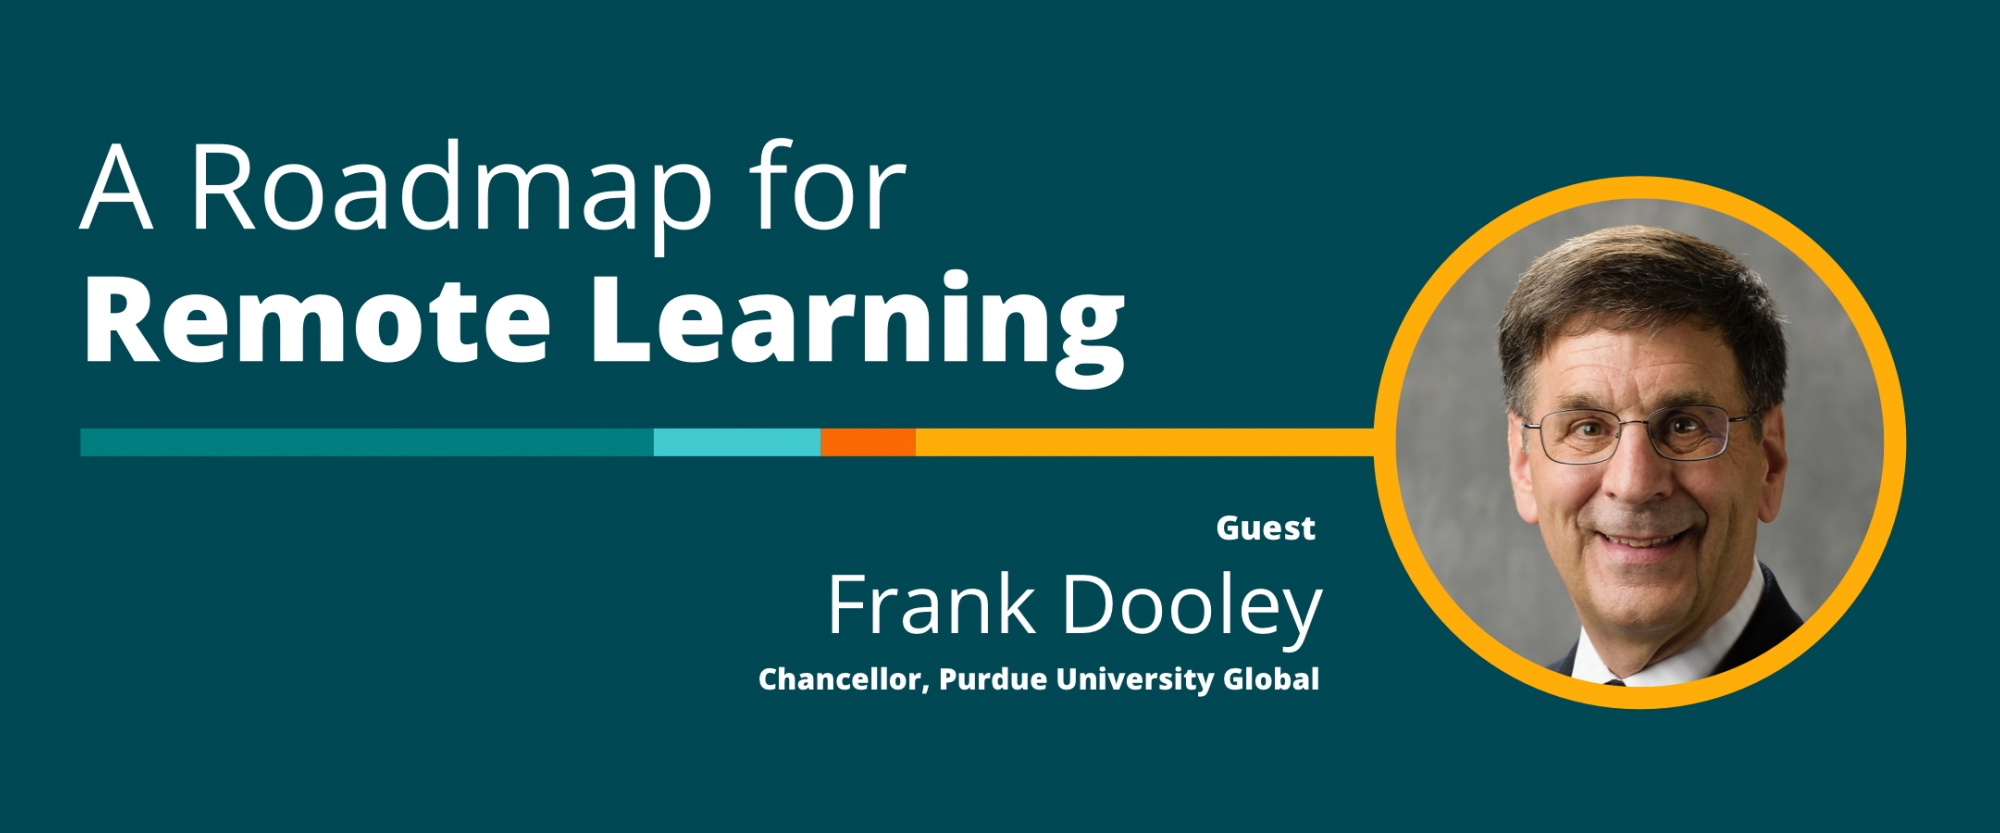 A Roadmap for Remote Learning: A Conversation With Frank Dooley, Chancellor, Purdue University Global